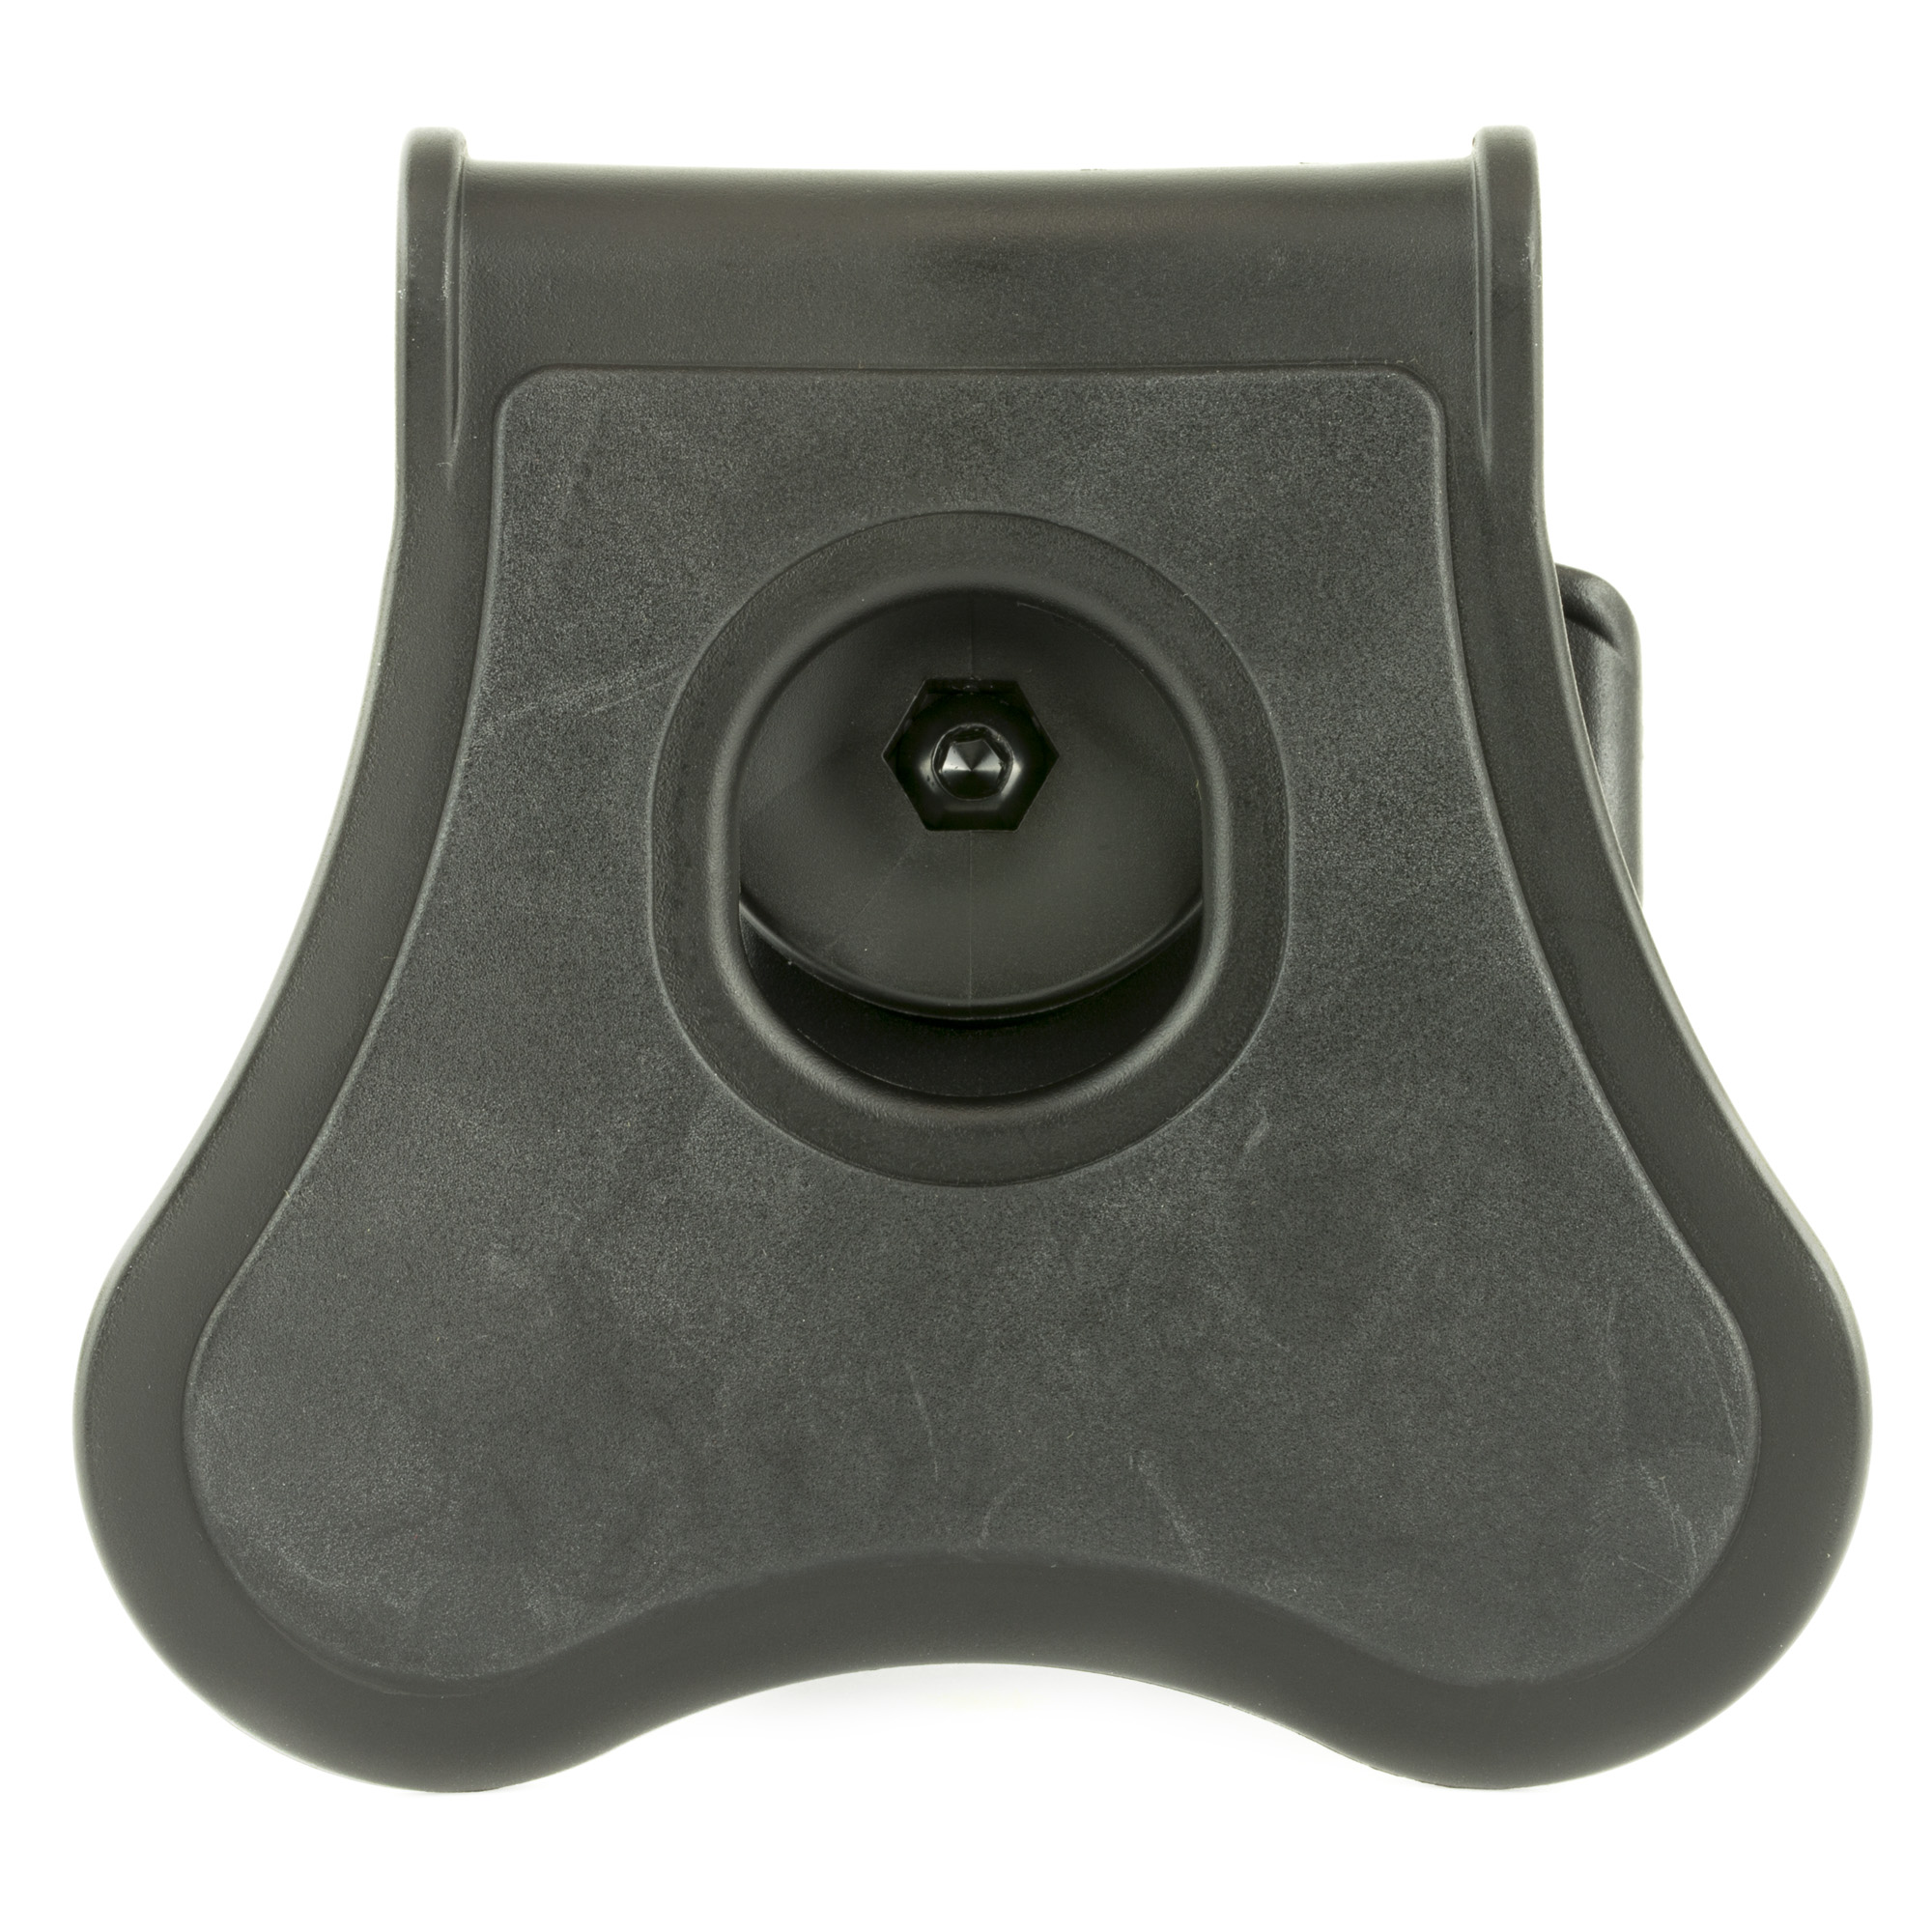 Bulldog Cases S&W Bodyguard 380 Rapid Release Right Hand Polymer Hip Holste-img-1